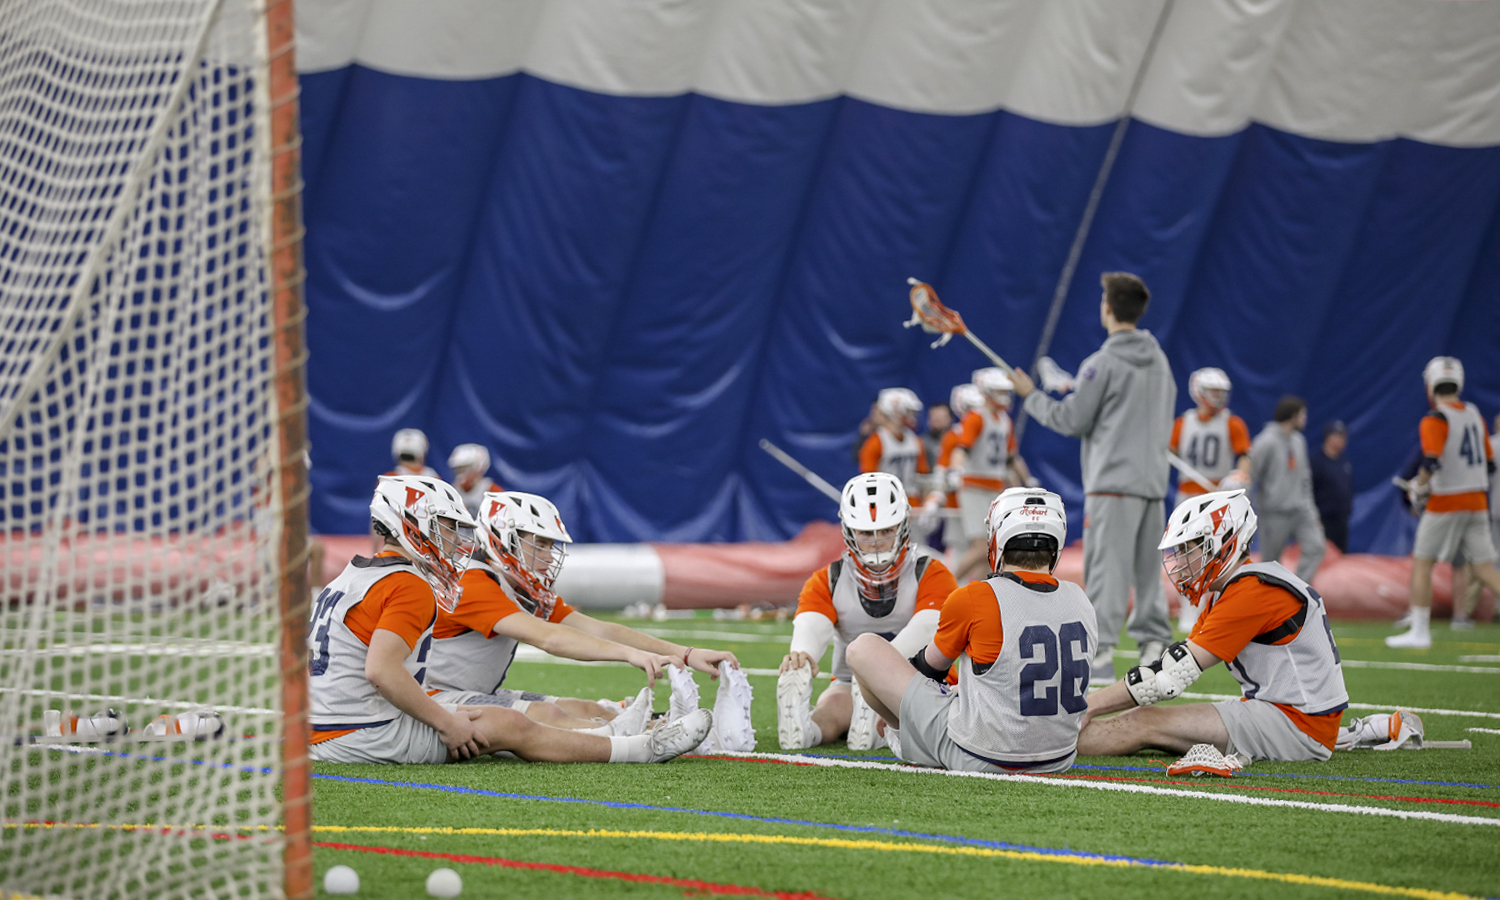 Members of the Hobart Lacrosse team warm up on the new indoor turf field.